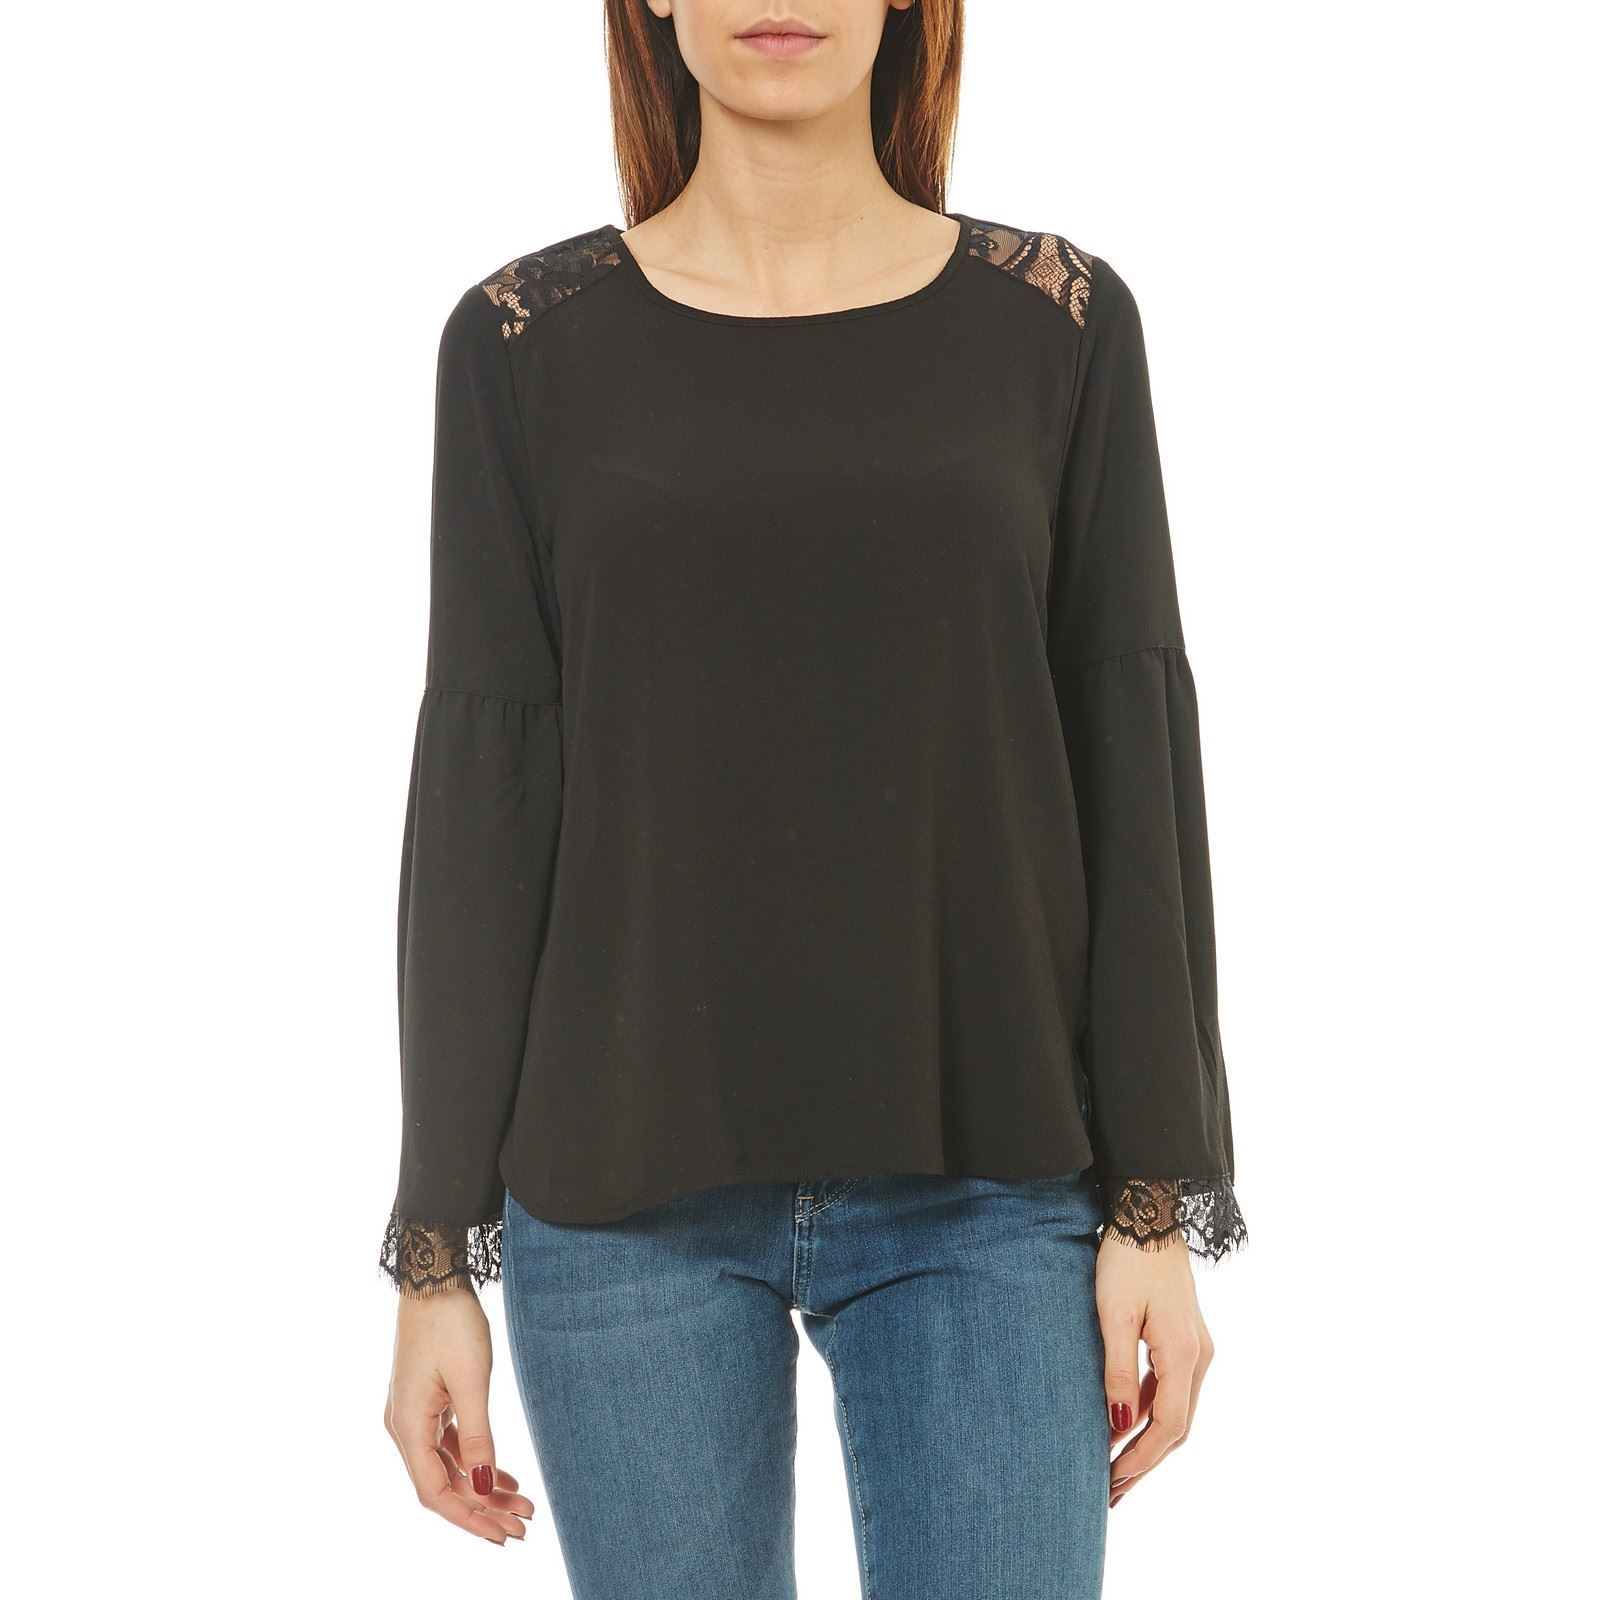 BLUSA - NEGRO Distinctive Only - Tops MGCCLSB